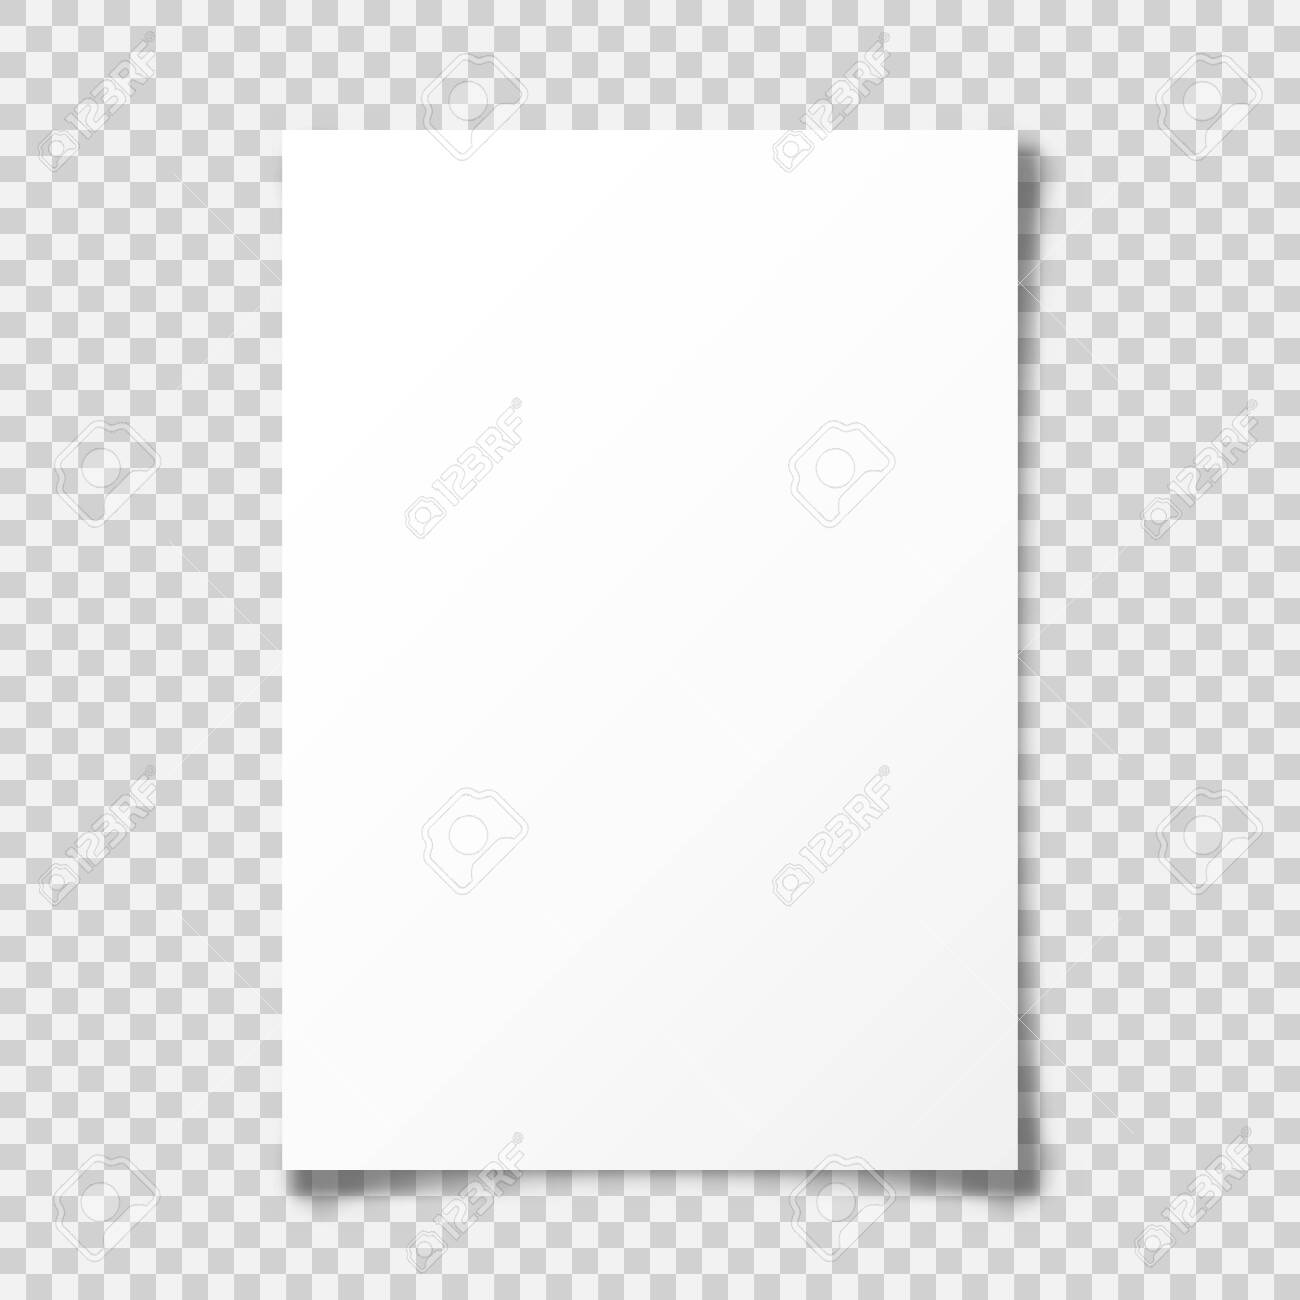 Realistic blank paper sheet with shadow in A4 format on transparent background. Notebook or book page with curled corner. Vector illustration. - 131421512